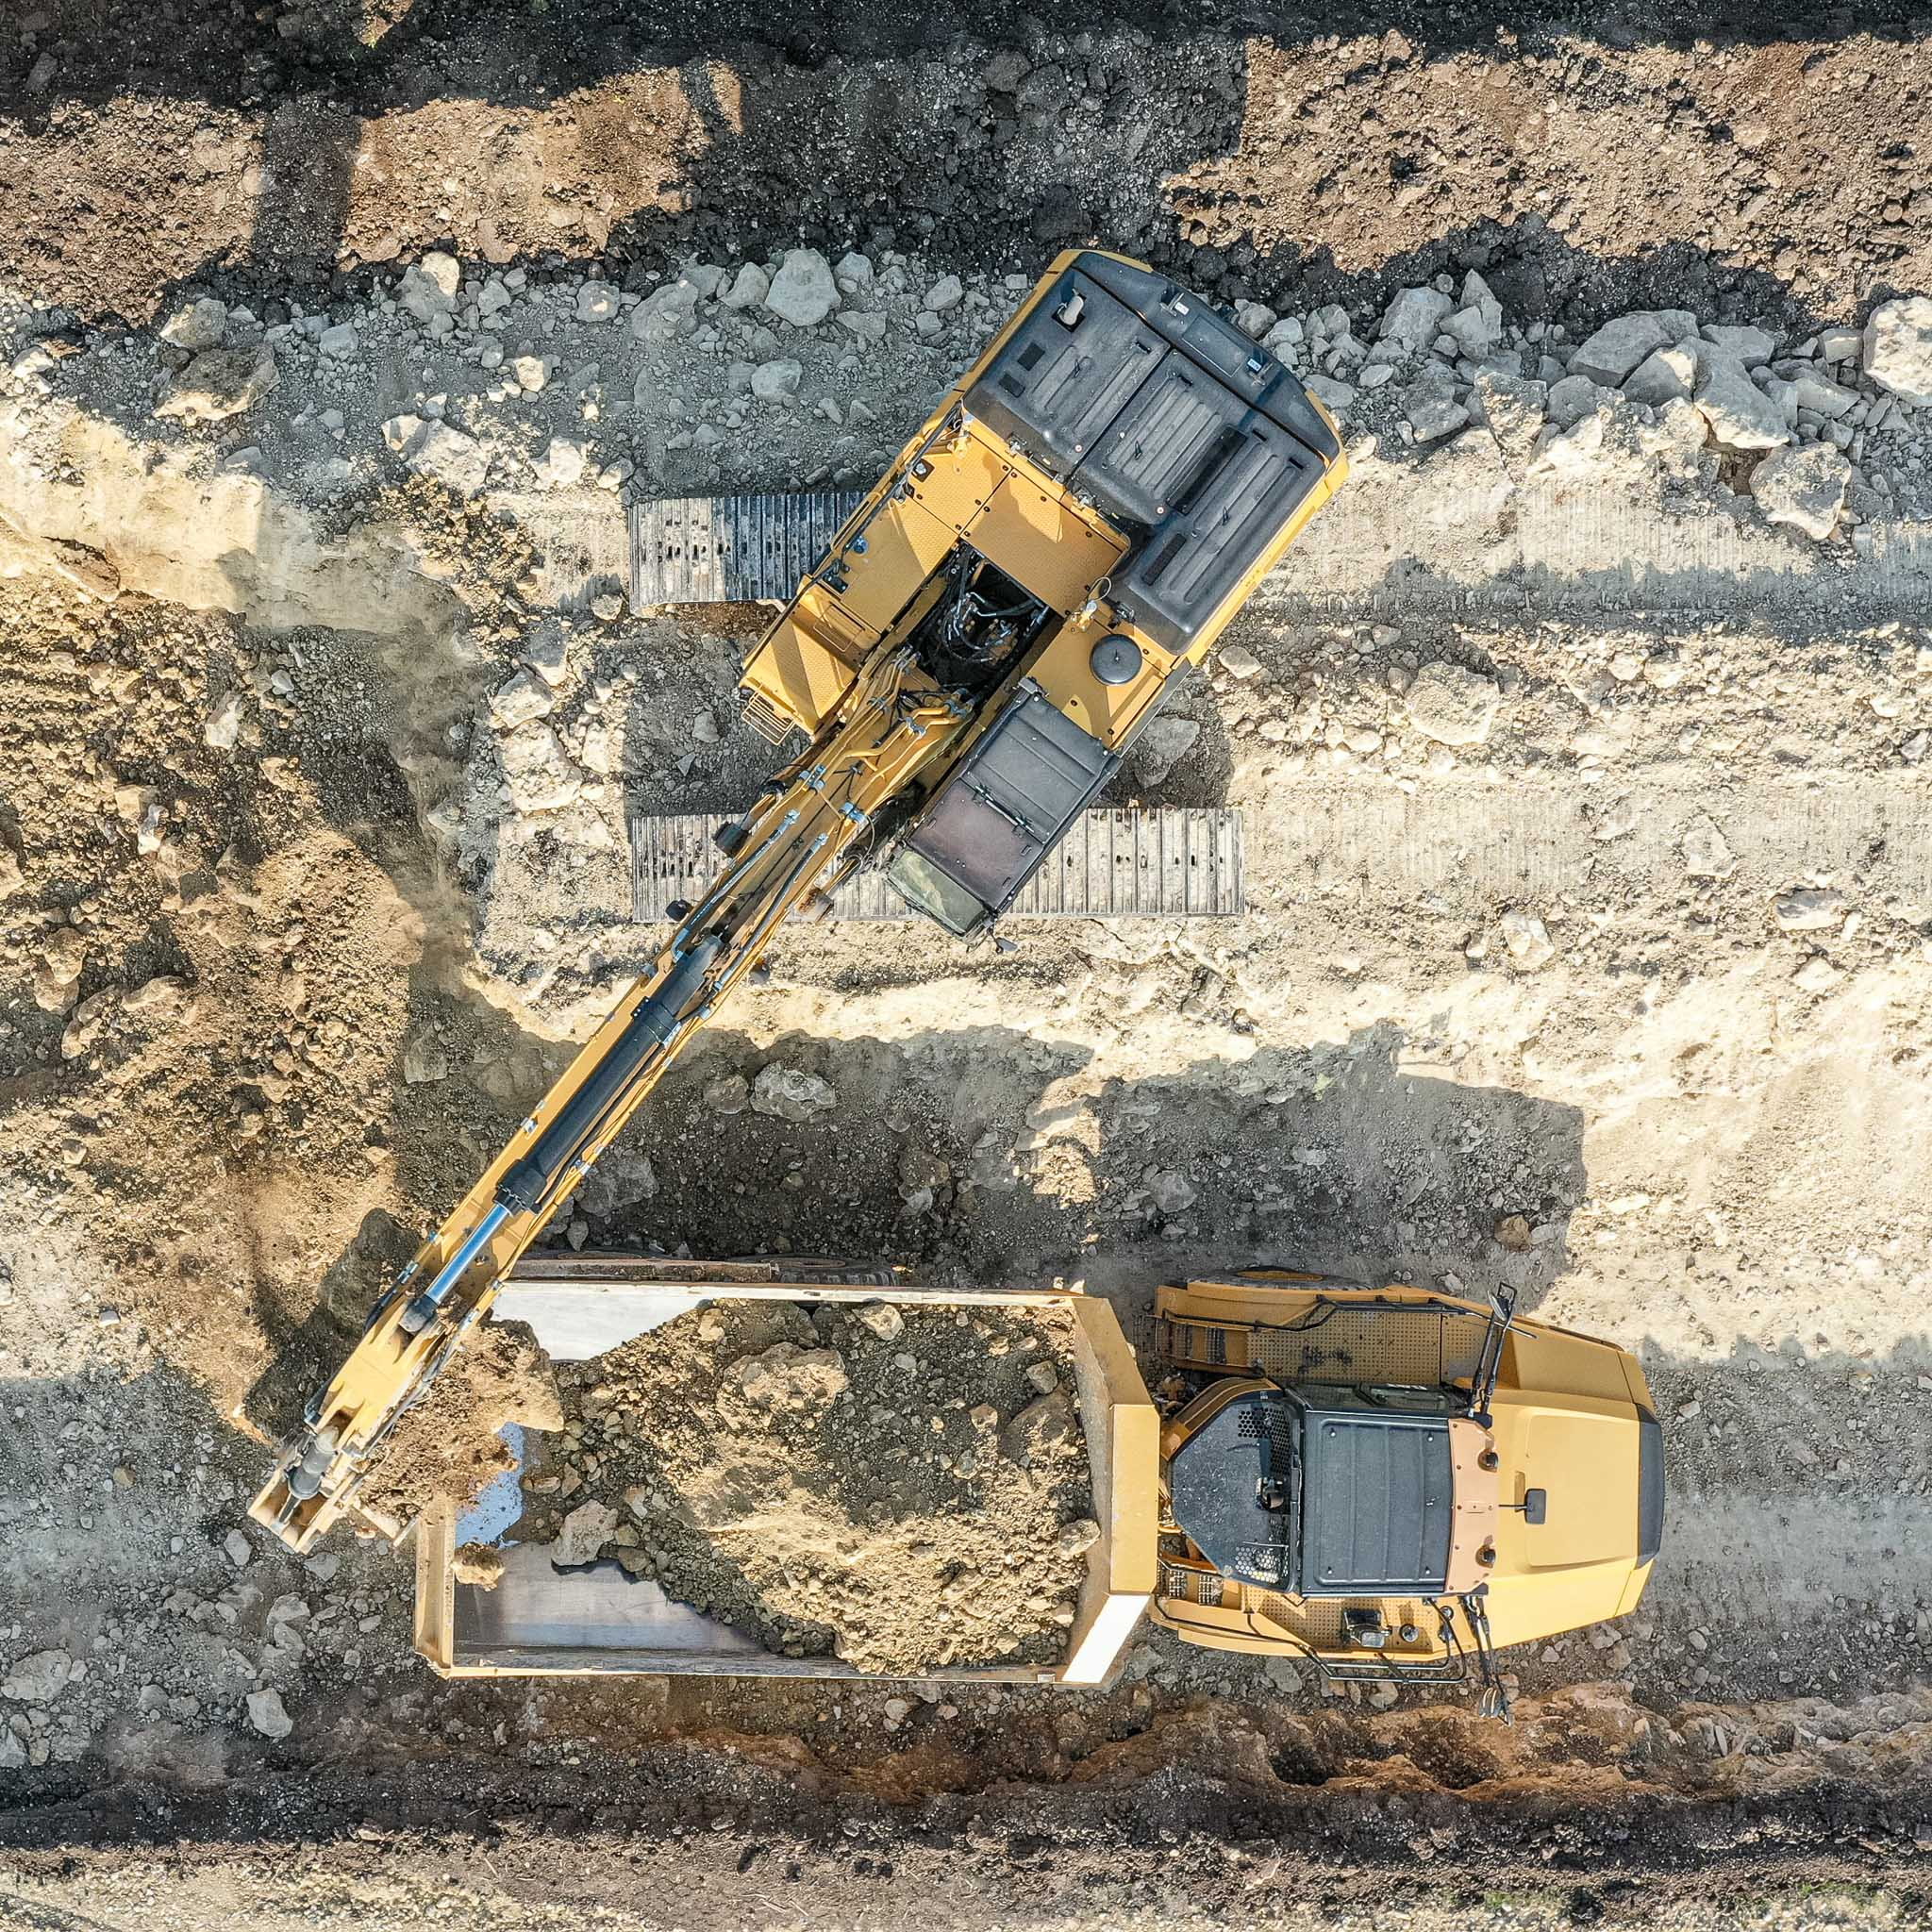 Aerial view of excavator and haul truck